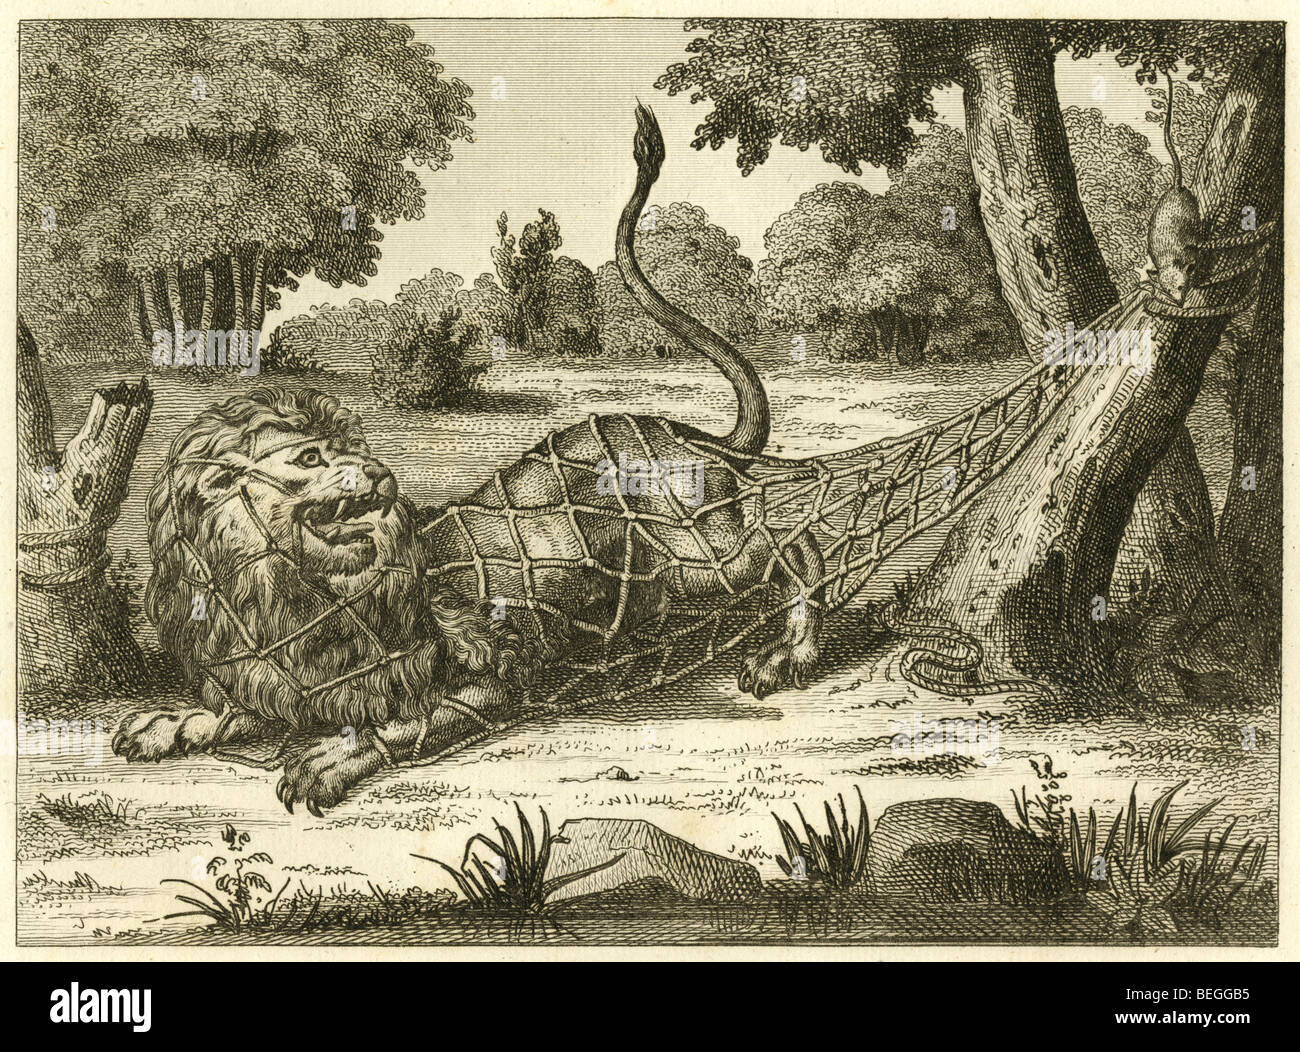 1834 French engraving of The Lion and the Mouse (Rat) fable. - Stock Image